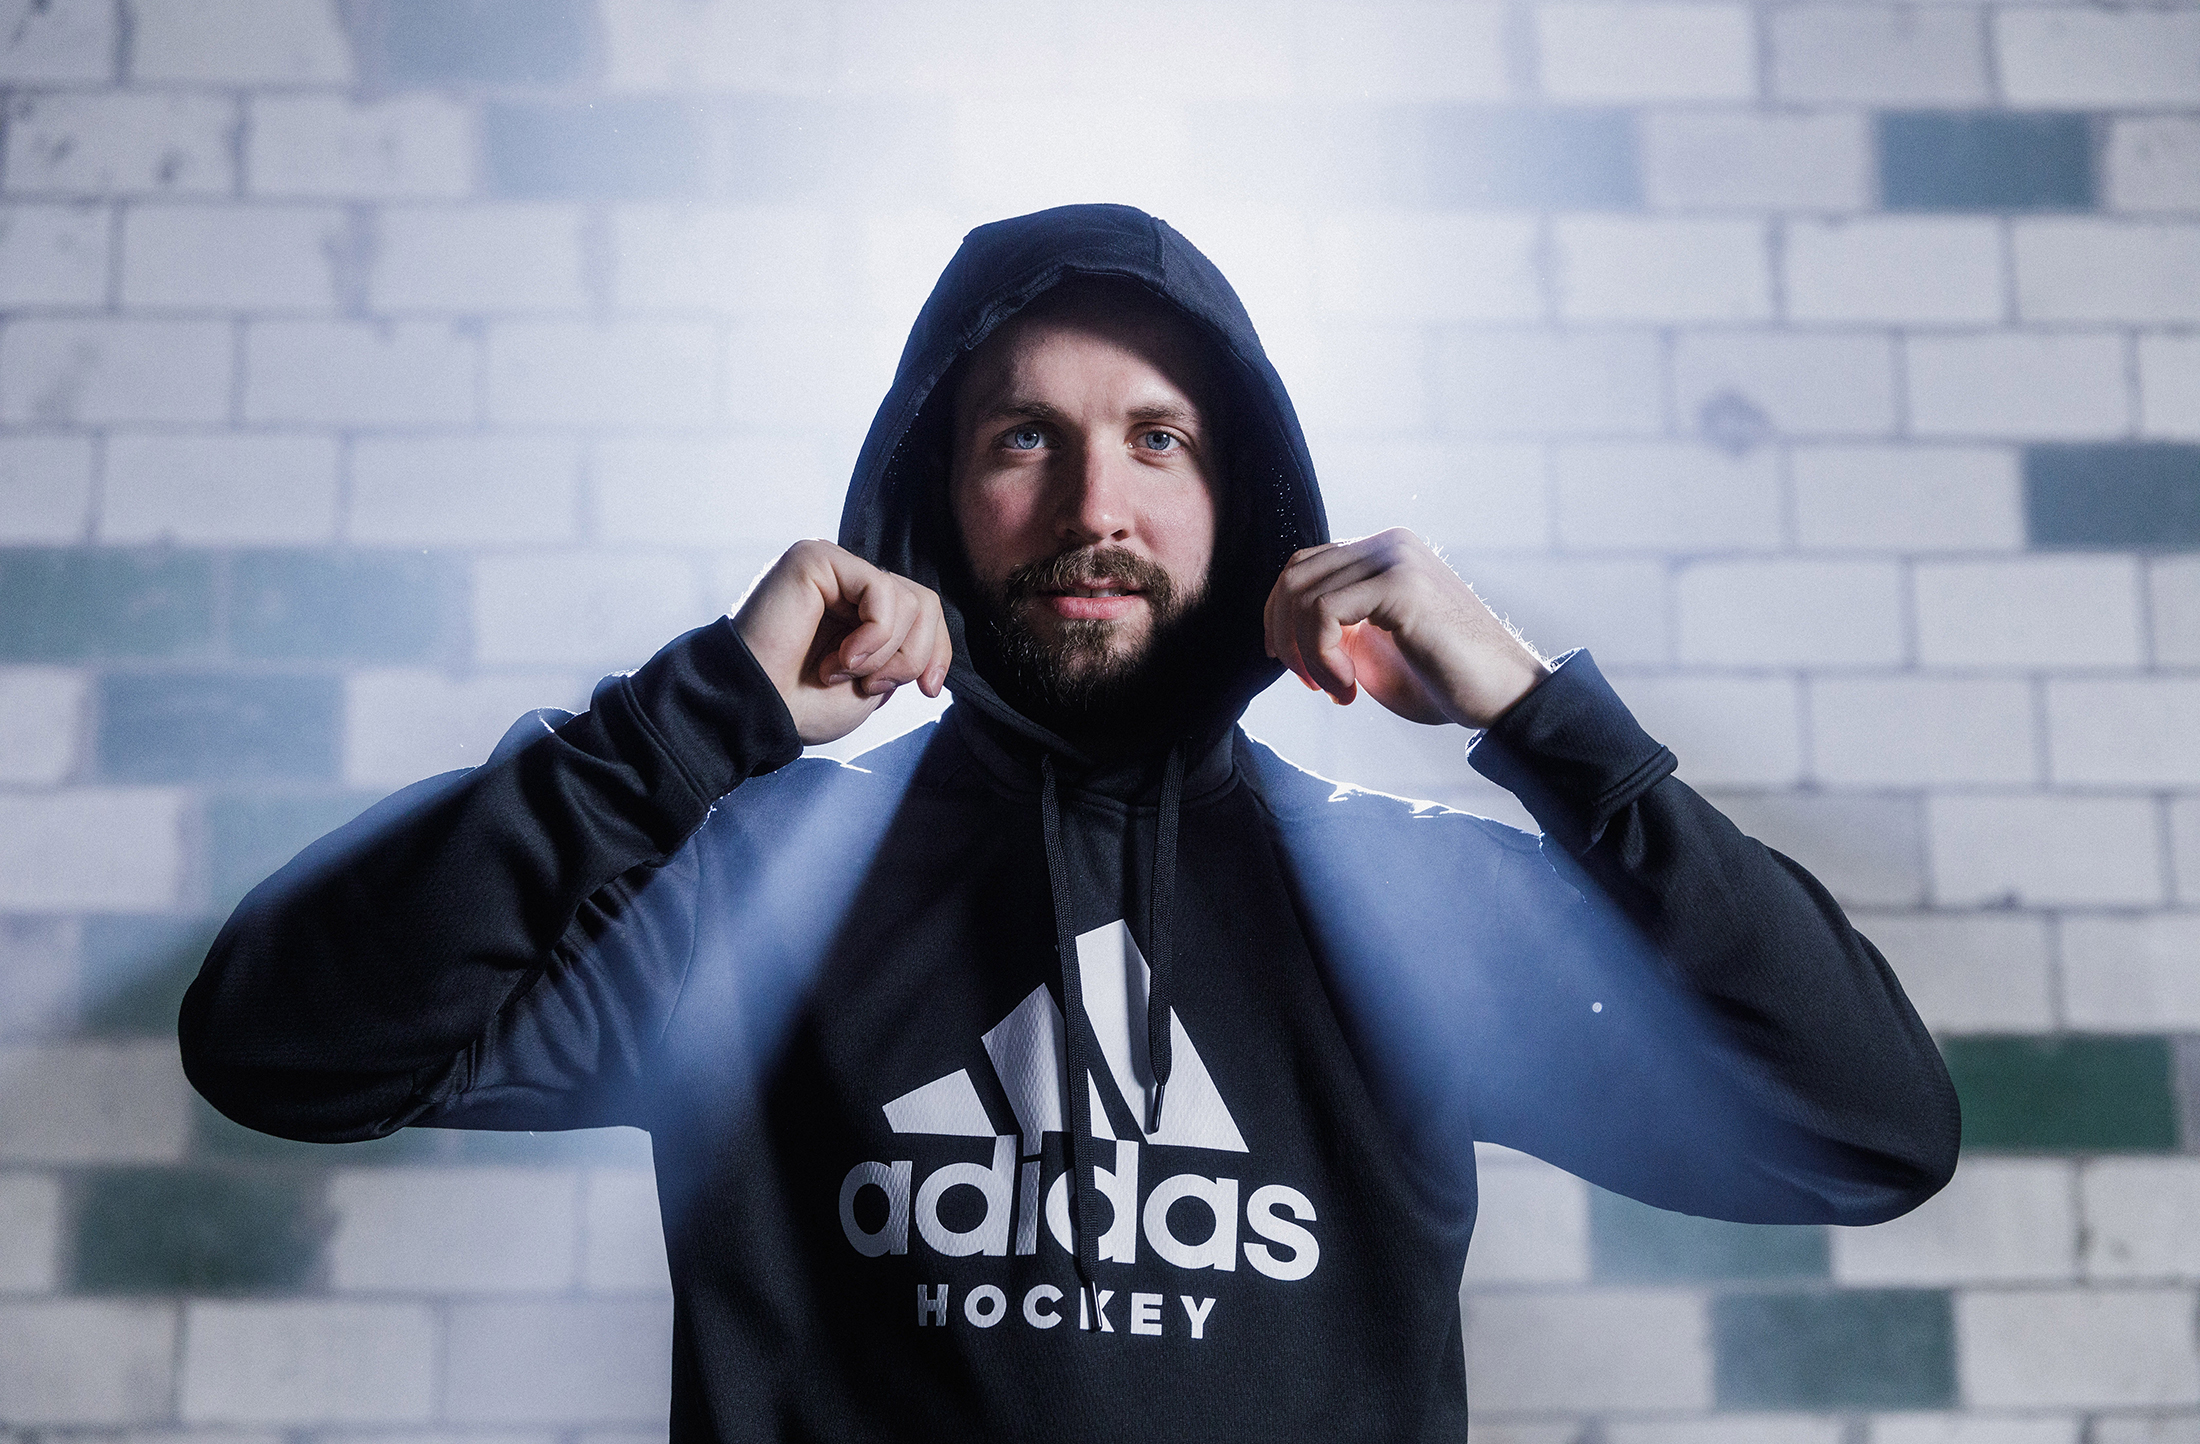 Adidas Hockey 2019 for Nikita Kucherov